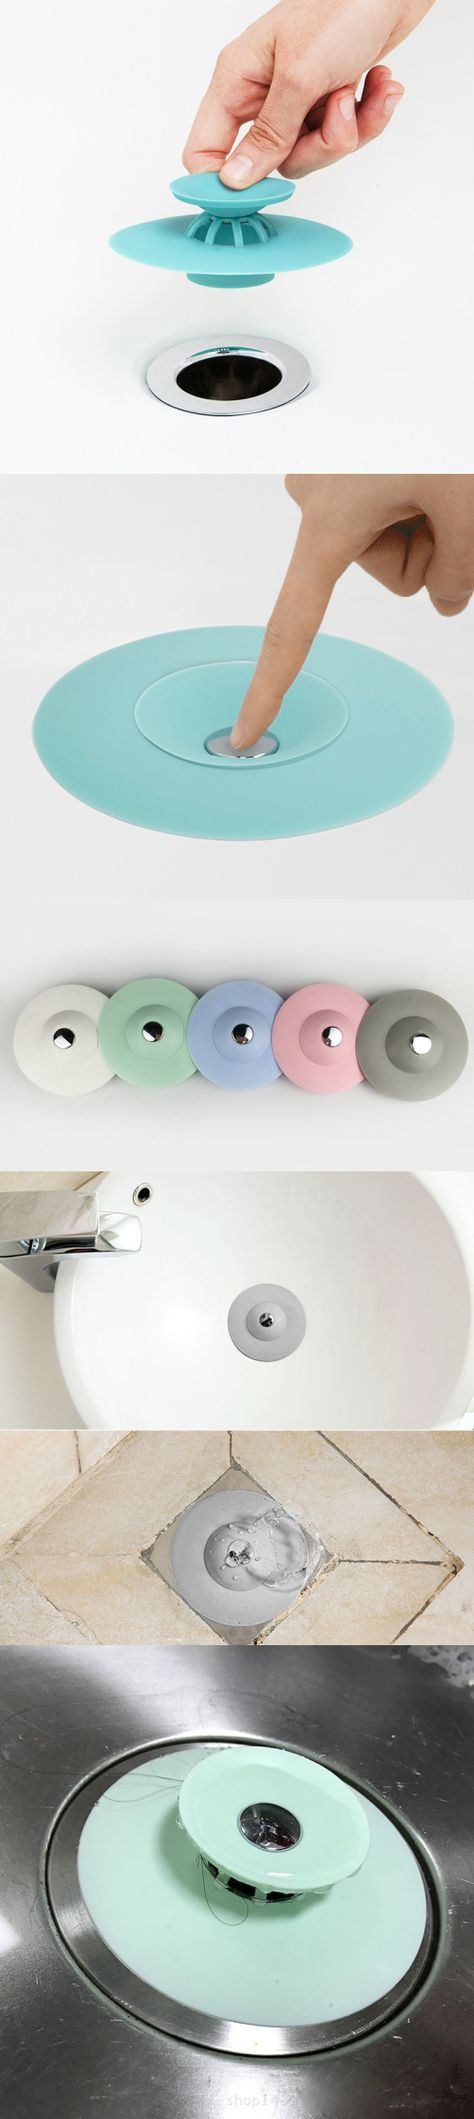 Photographic Gallery Silicone Drain Stopper Hair Catcher in Deodorant Sink Bathtub Floor Drain Protector